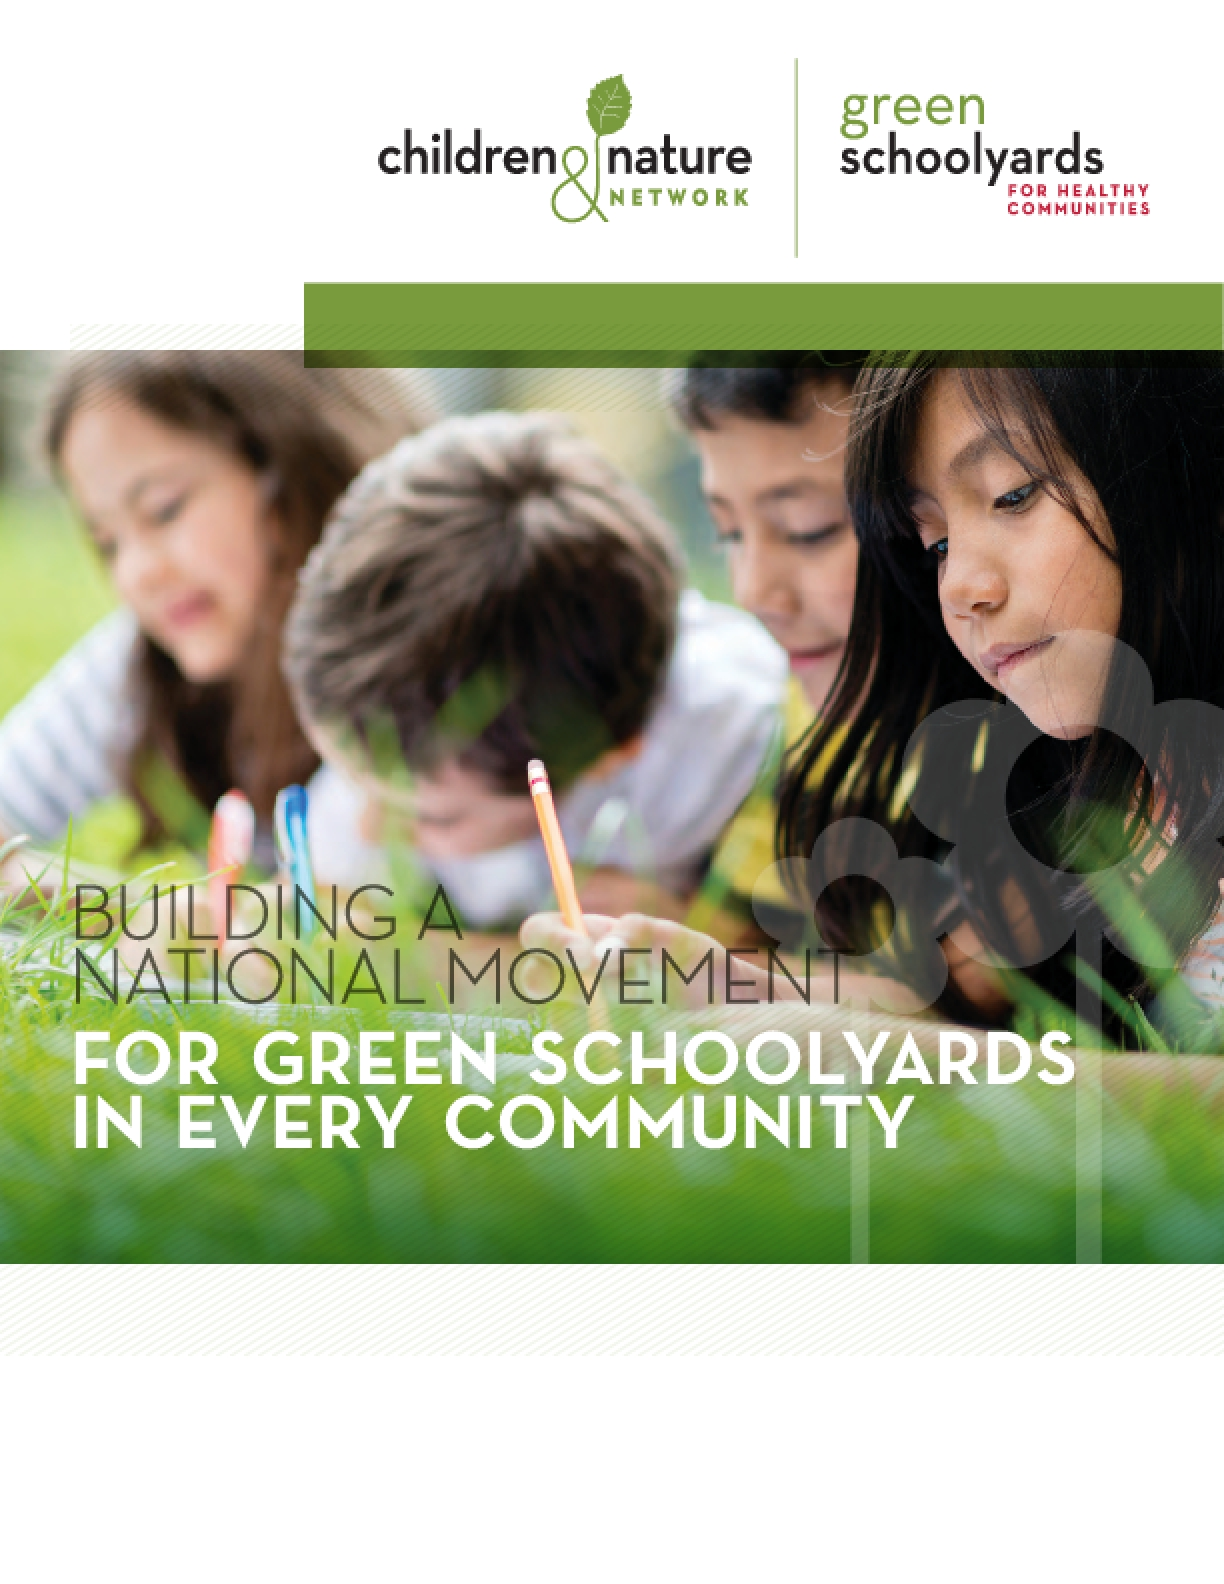 Building a National Movement for Green Schoolyards in Every Community